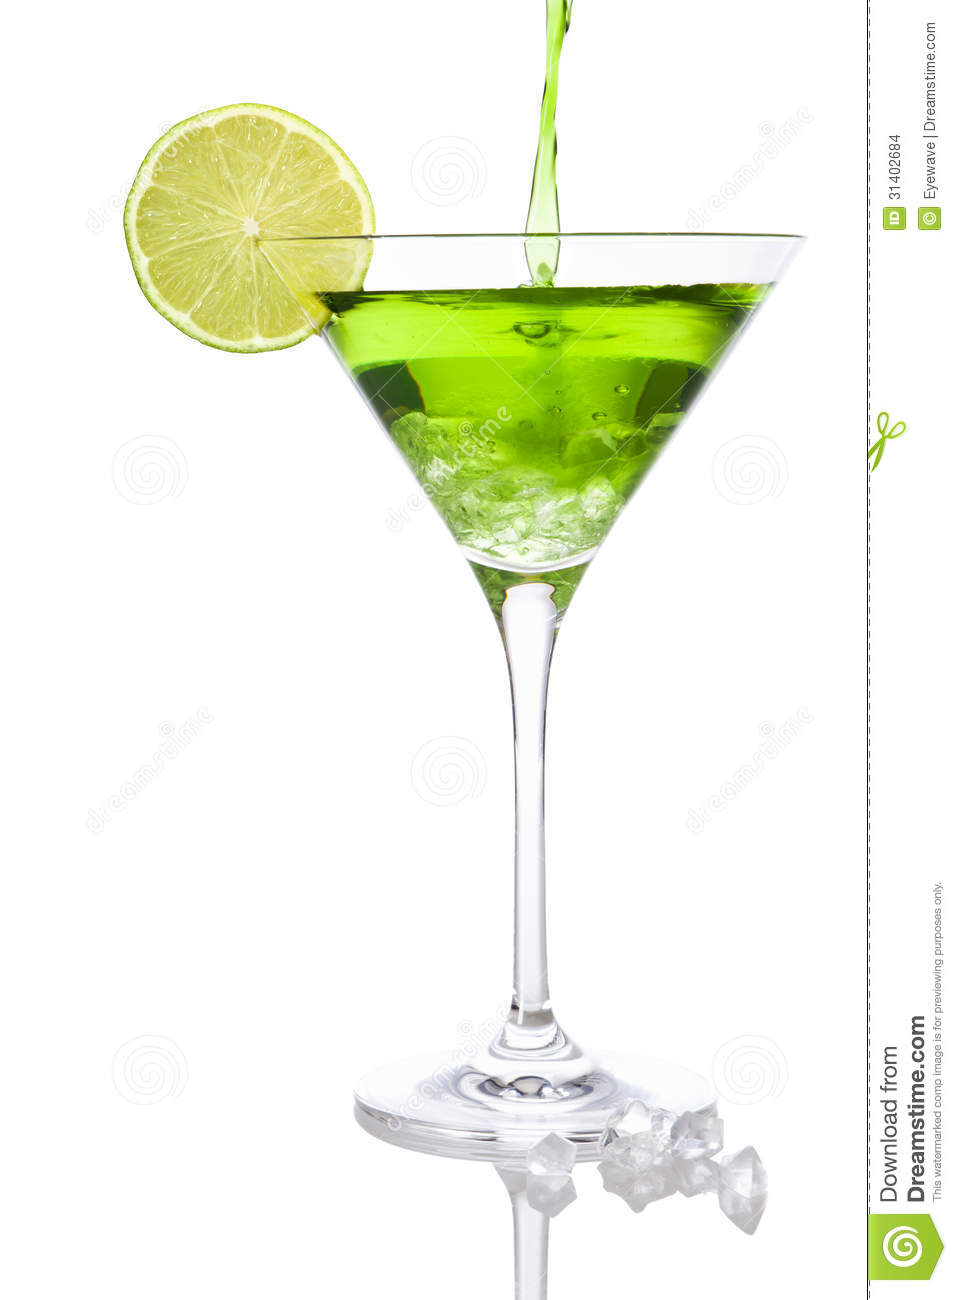 Download Pouring A Green Cocktail Into A Martini Glass Stock Photo - Image of citrus, refreshing: 31402684